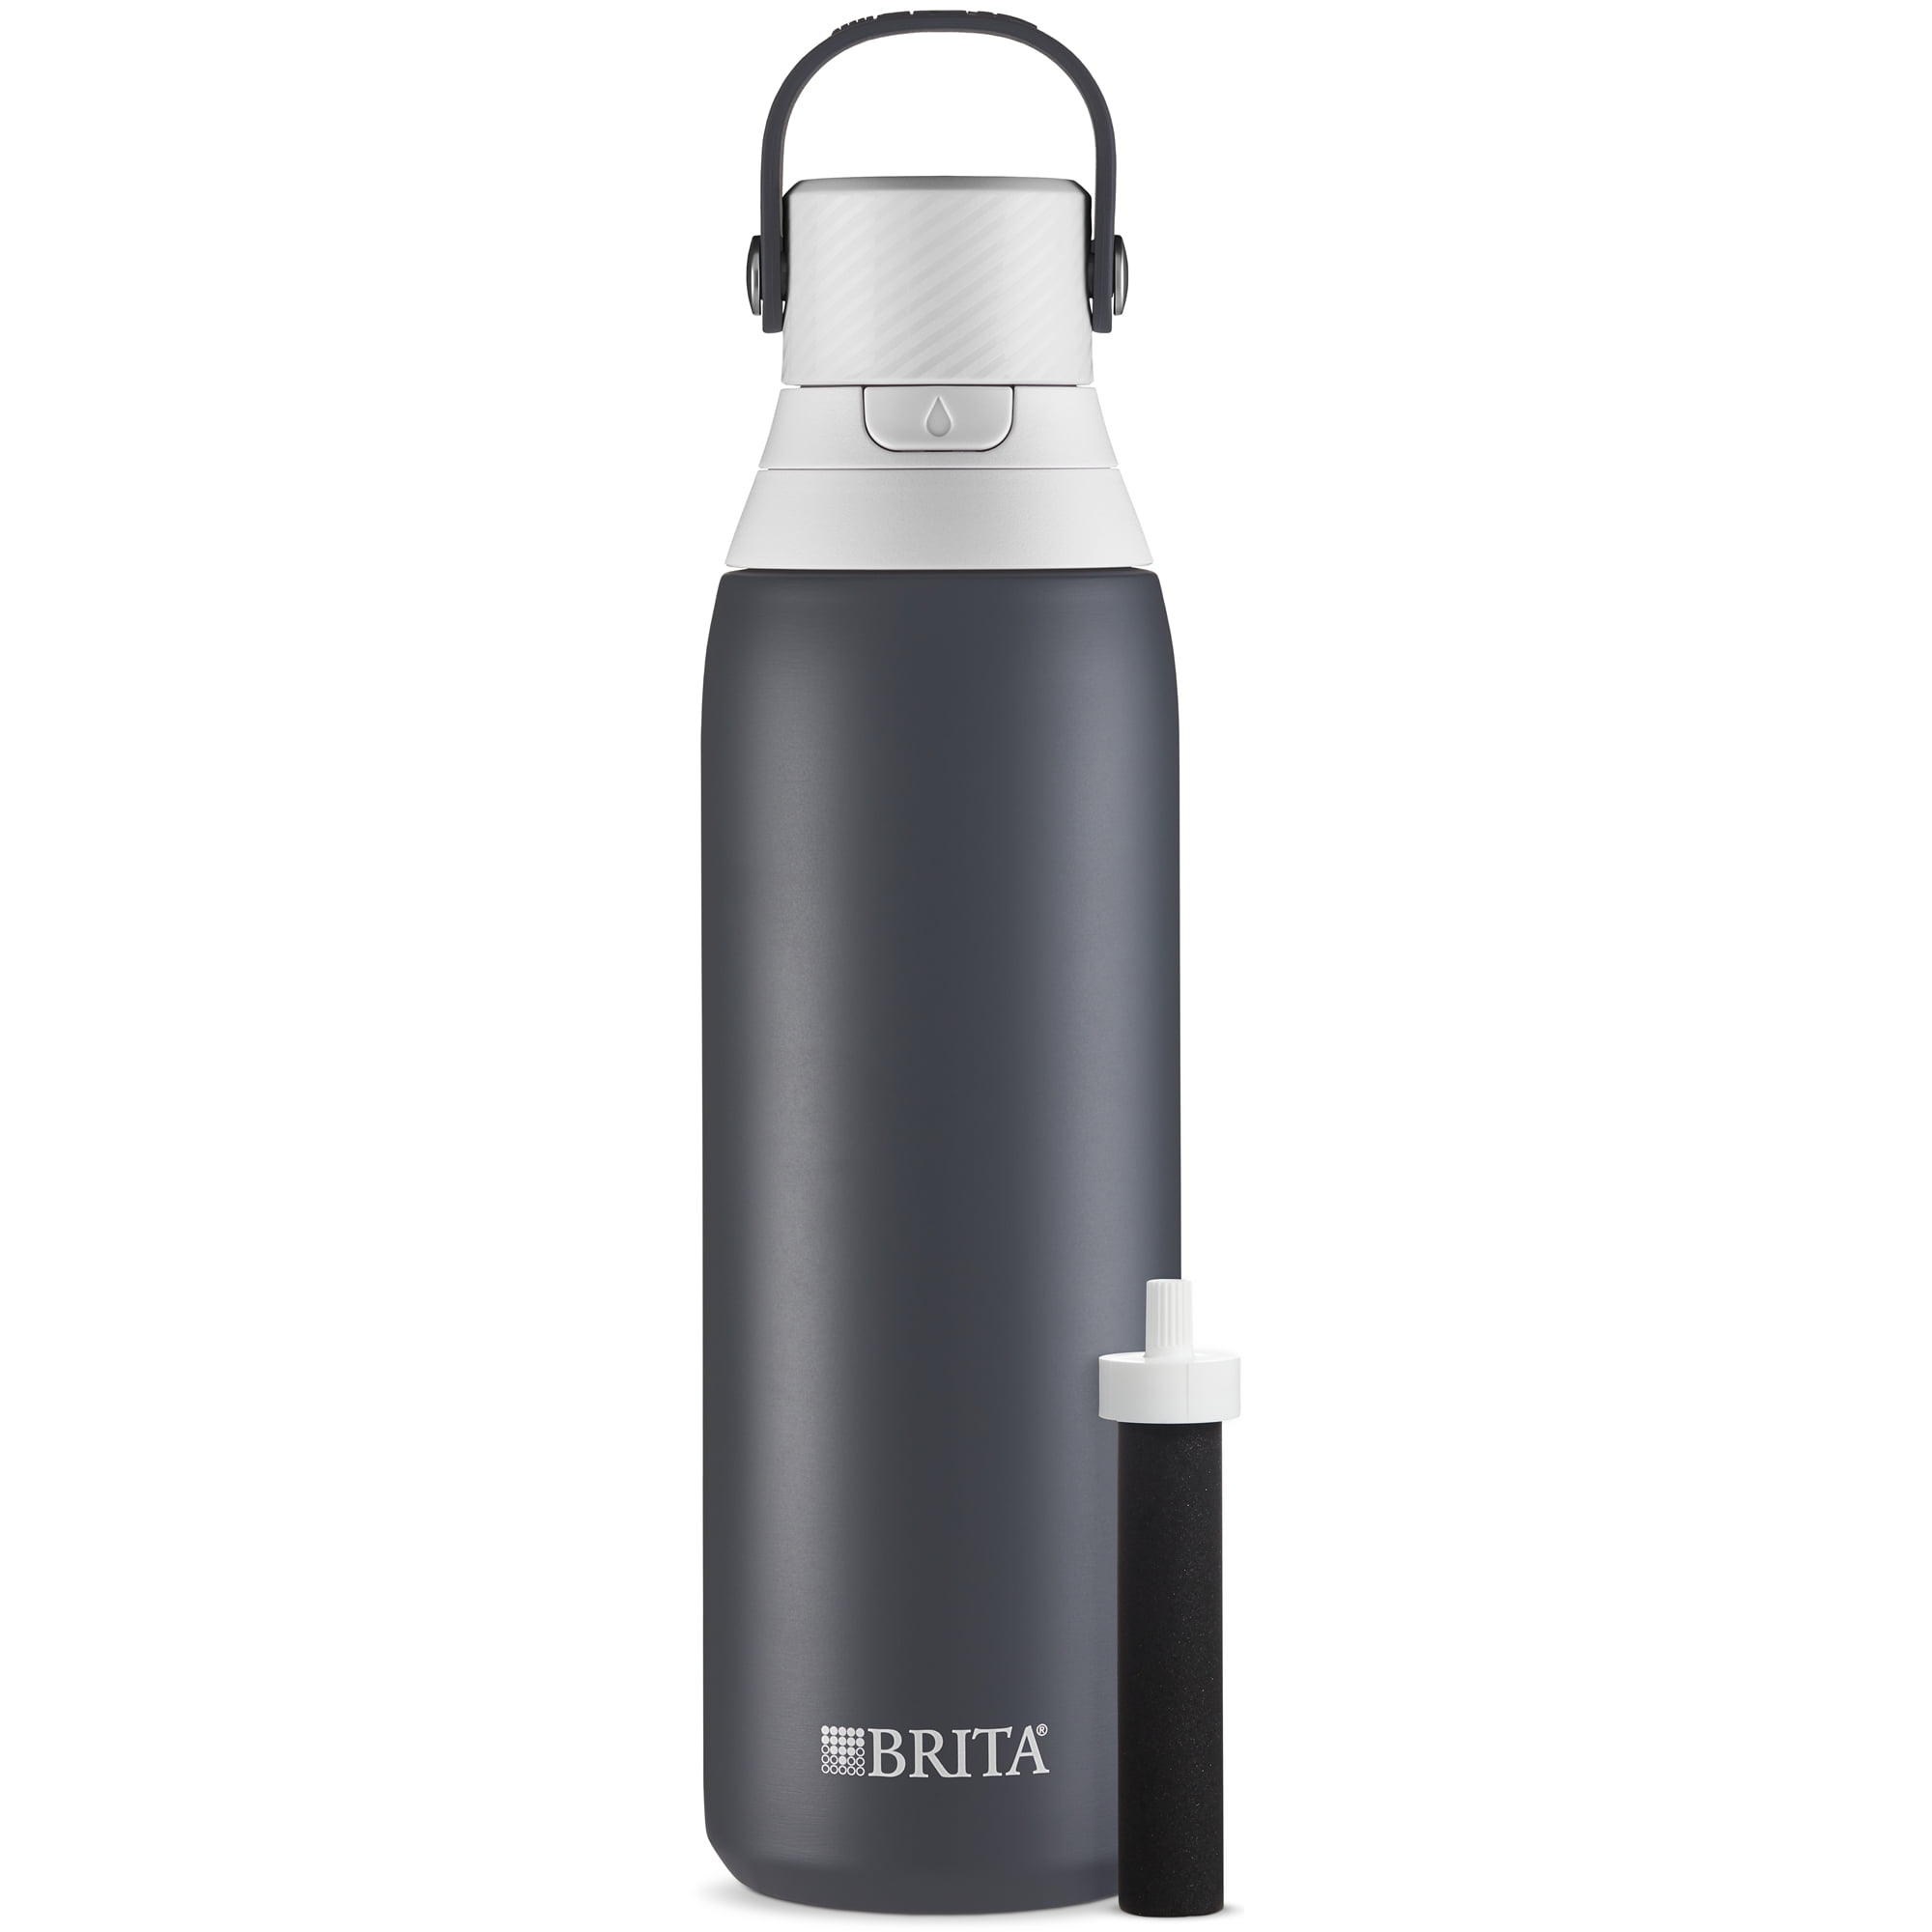 Brita 20oz Premium Double-Wall Stainless Steel Insulated Filtered Water Bottle - Dark Gray